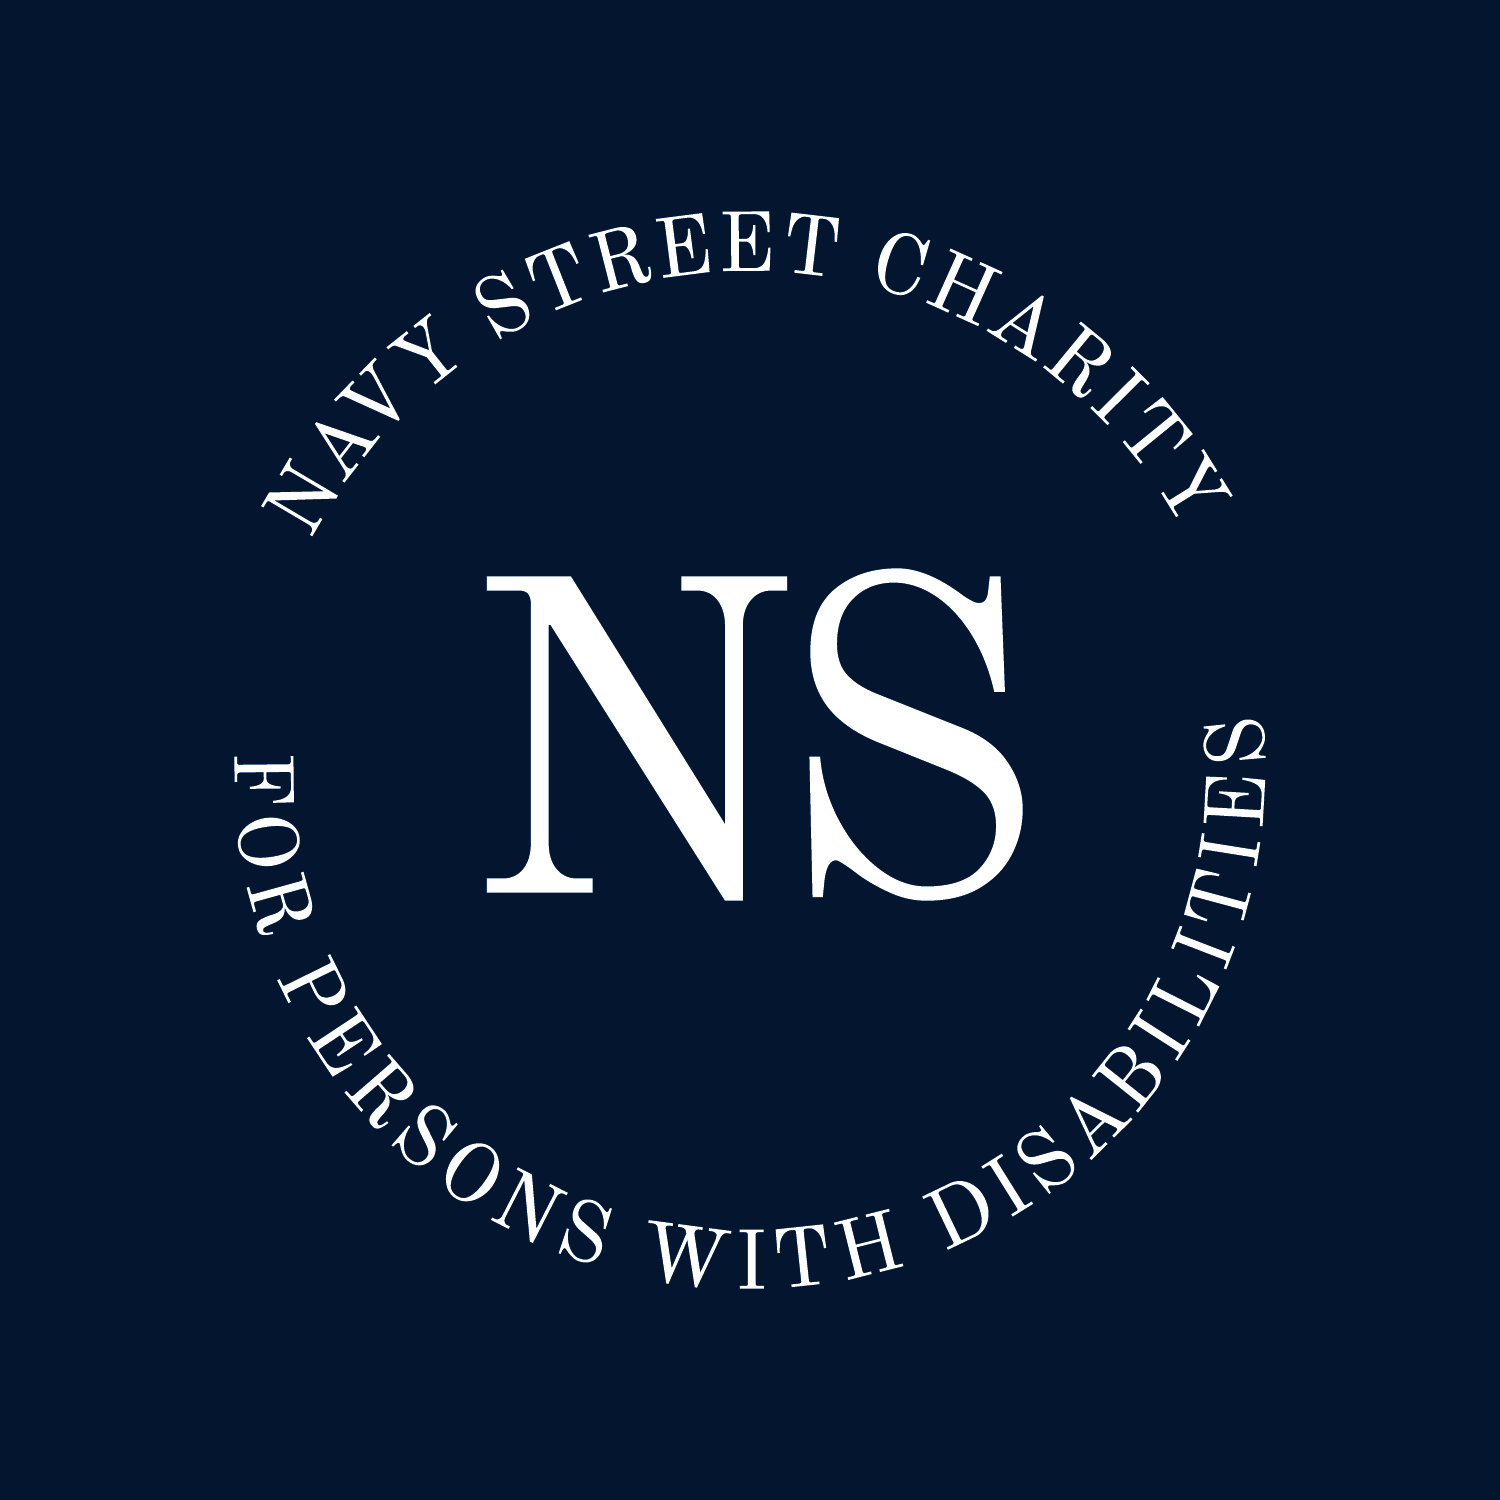 - Our MissionNAVY STREET CHARITY IS A ORGANIZATION THAT BRINGS PORTABLE WHEELCHAIR RAMPS TO INDIVIDUALS WHO LIVE WITH DISABILITIES THAT AFFECT MOBILITY WITHIN ONTARIO.